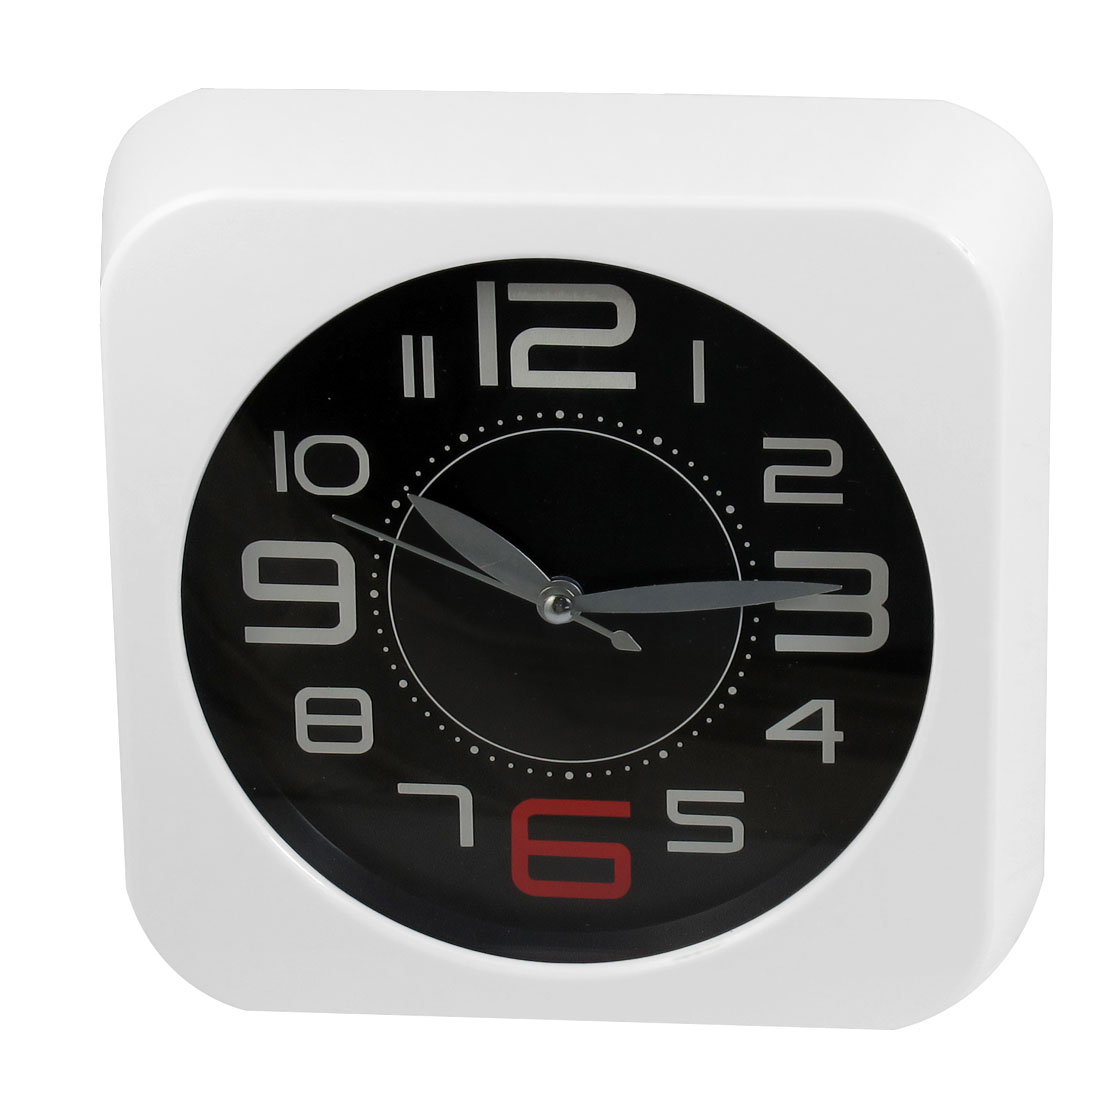 Square Shaped Case Arabic Numbers Display Wall Clock White